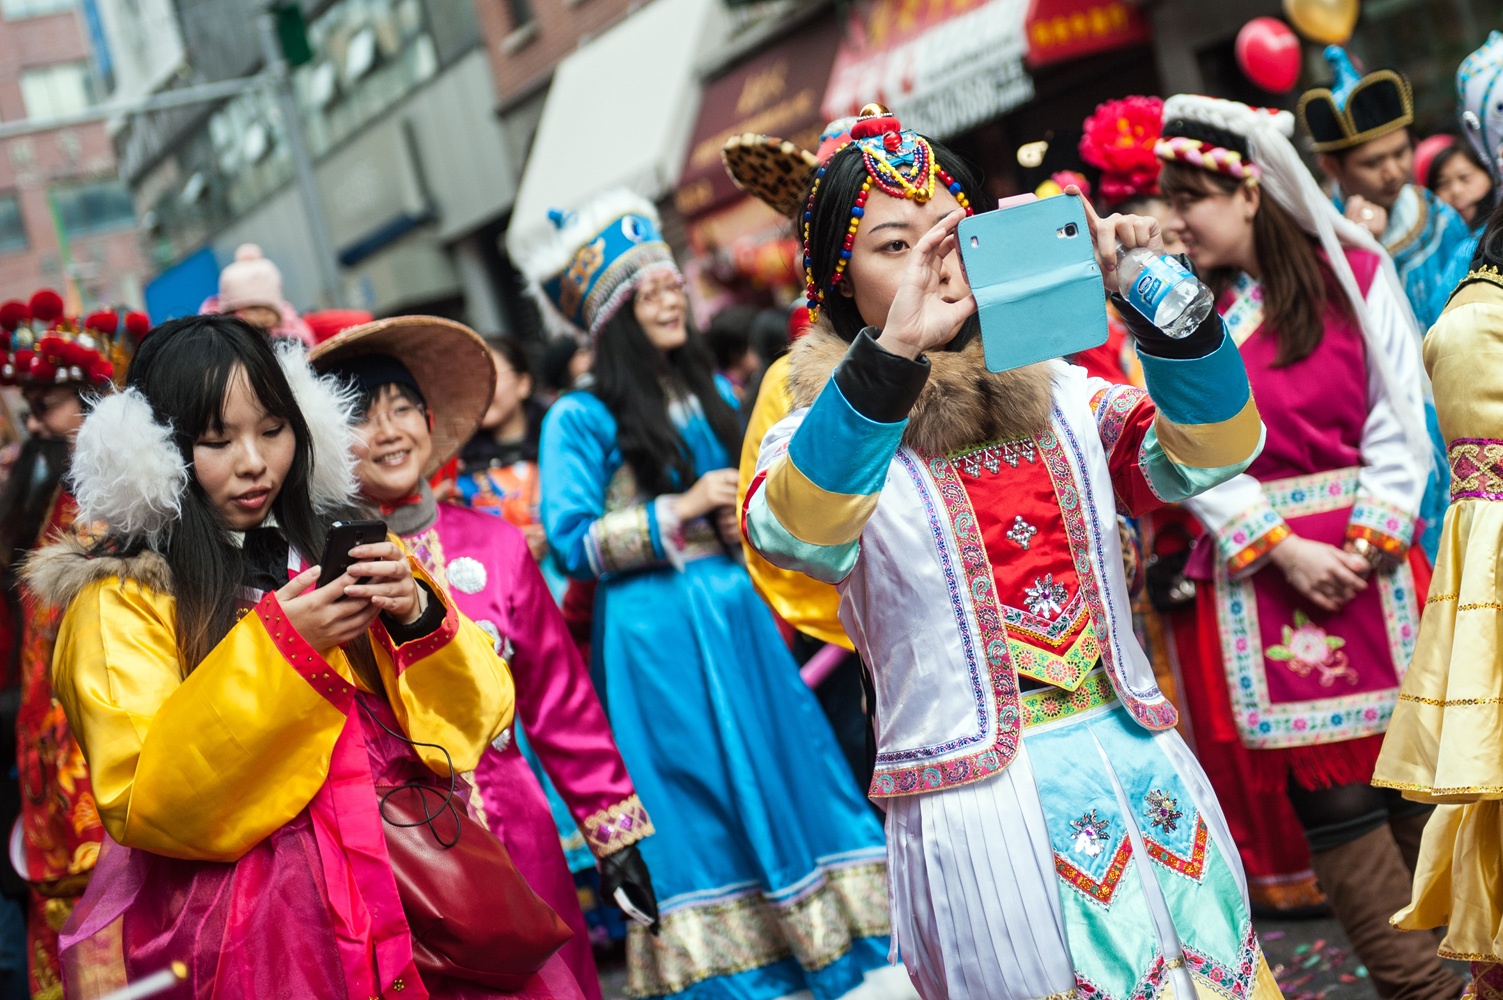 Chines-New-Year-parade-3033.jpg